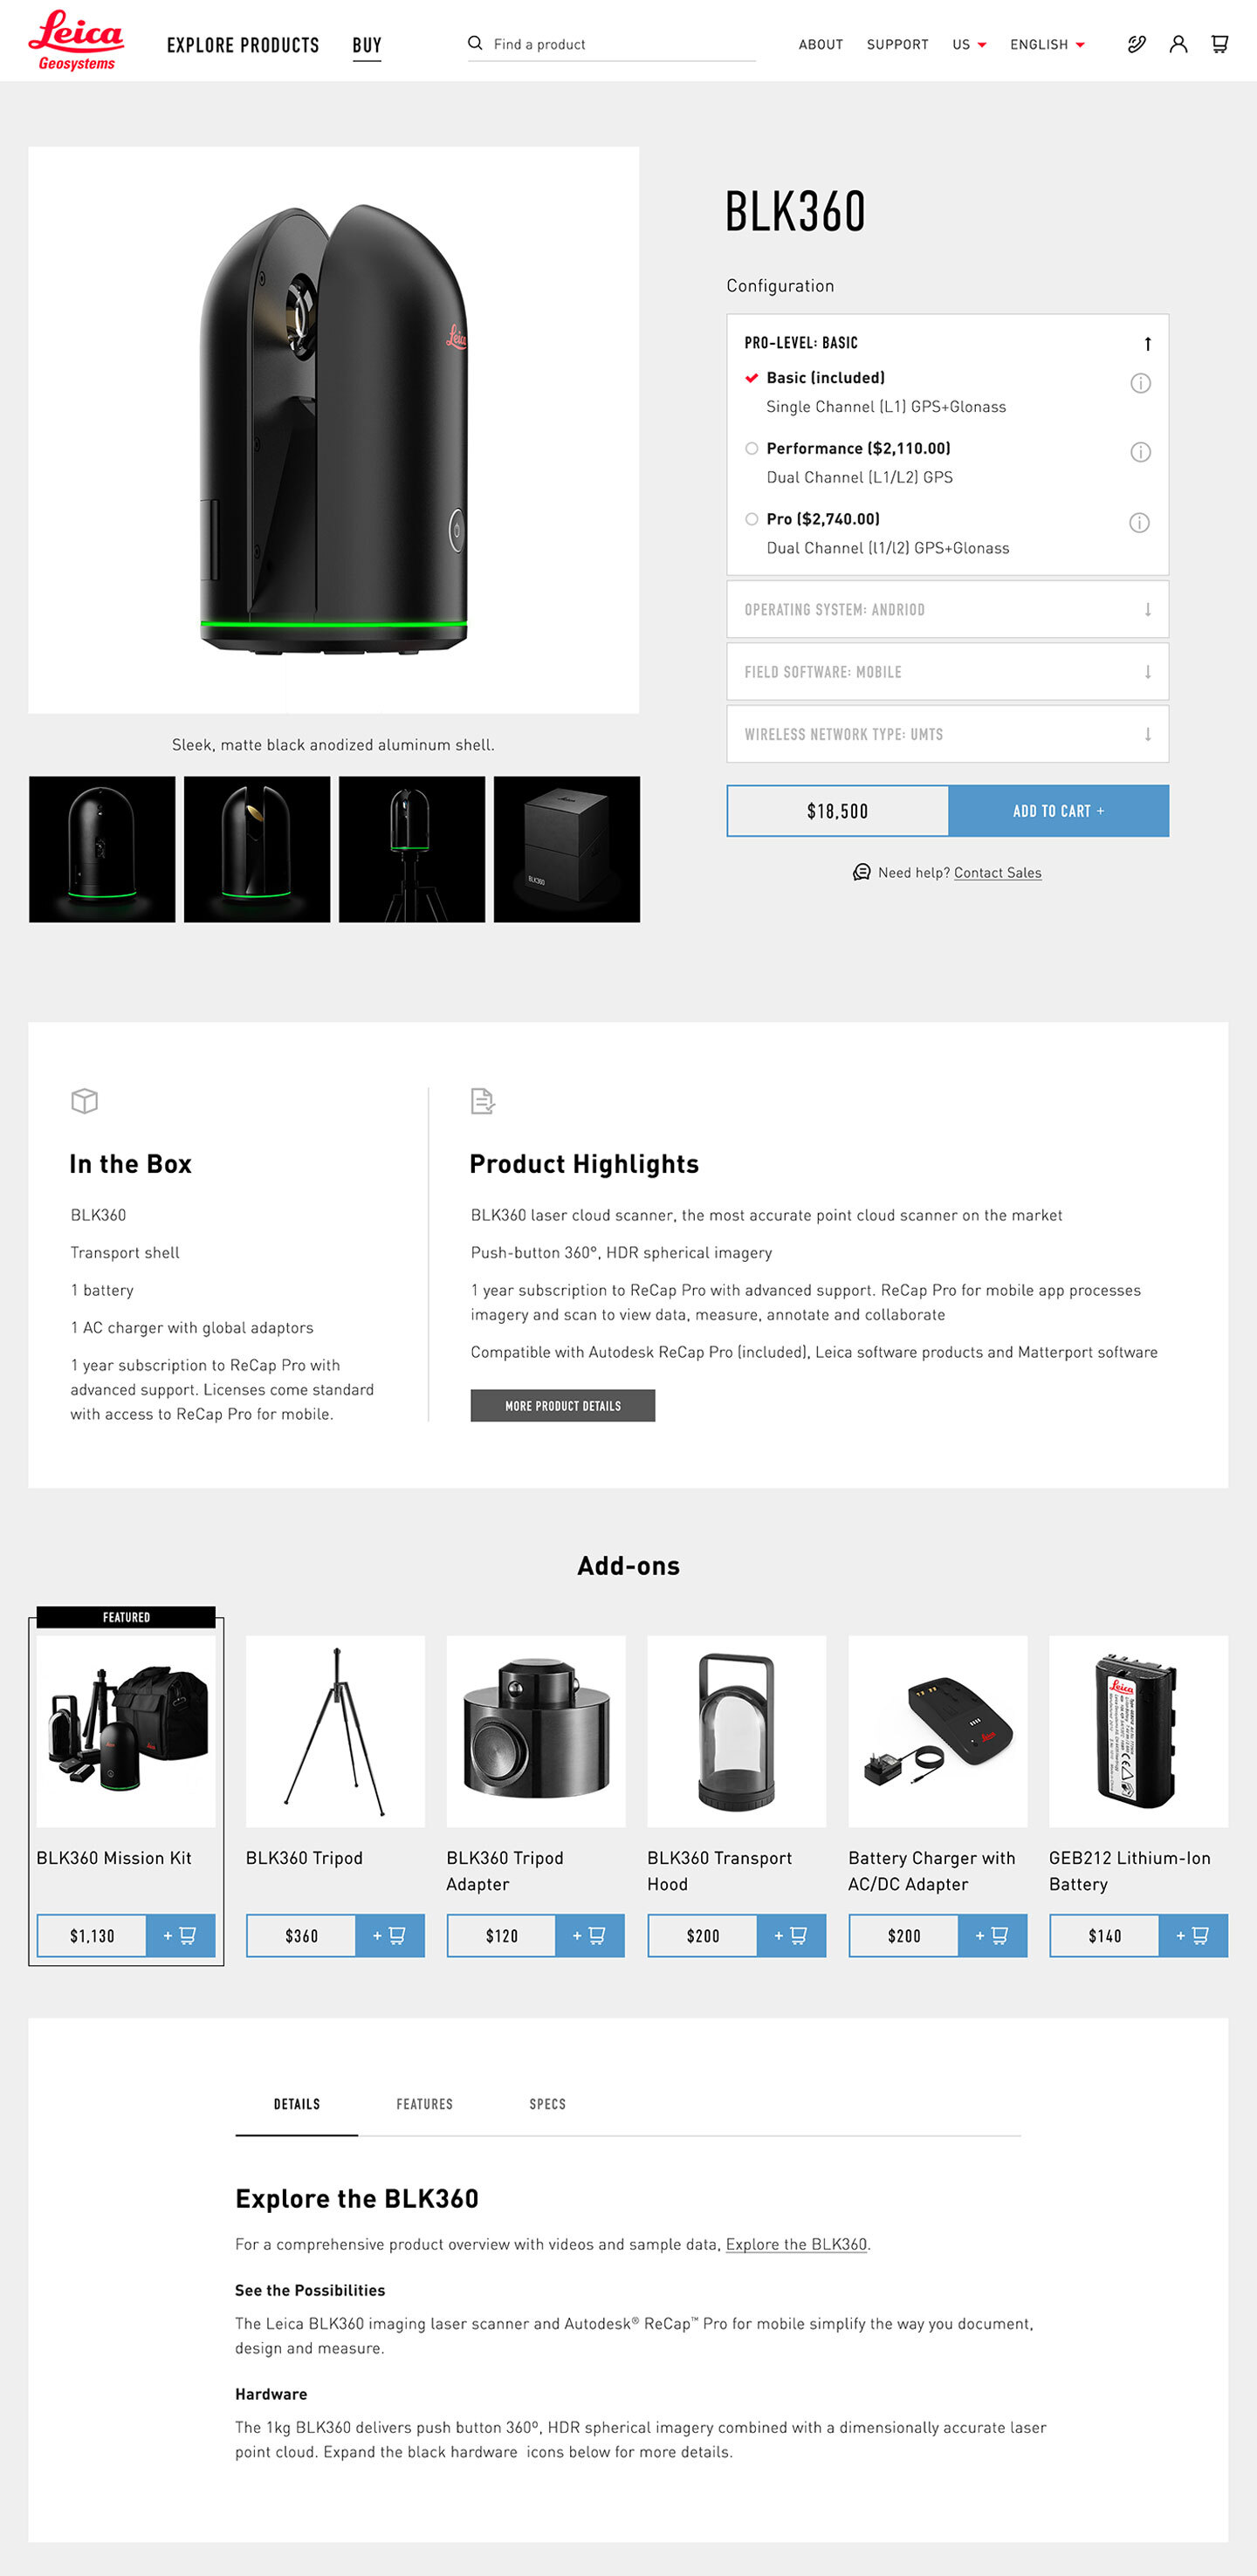 The Leica BLK Shop page design